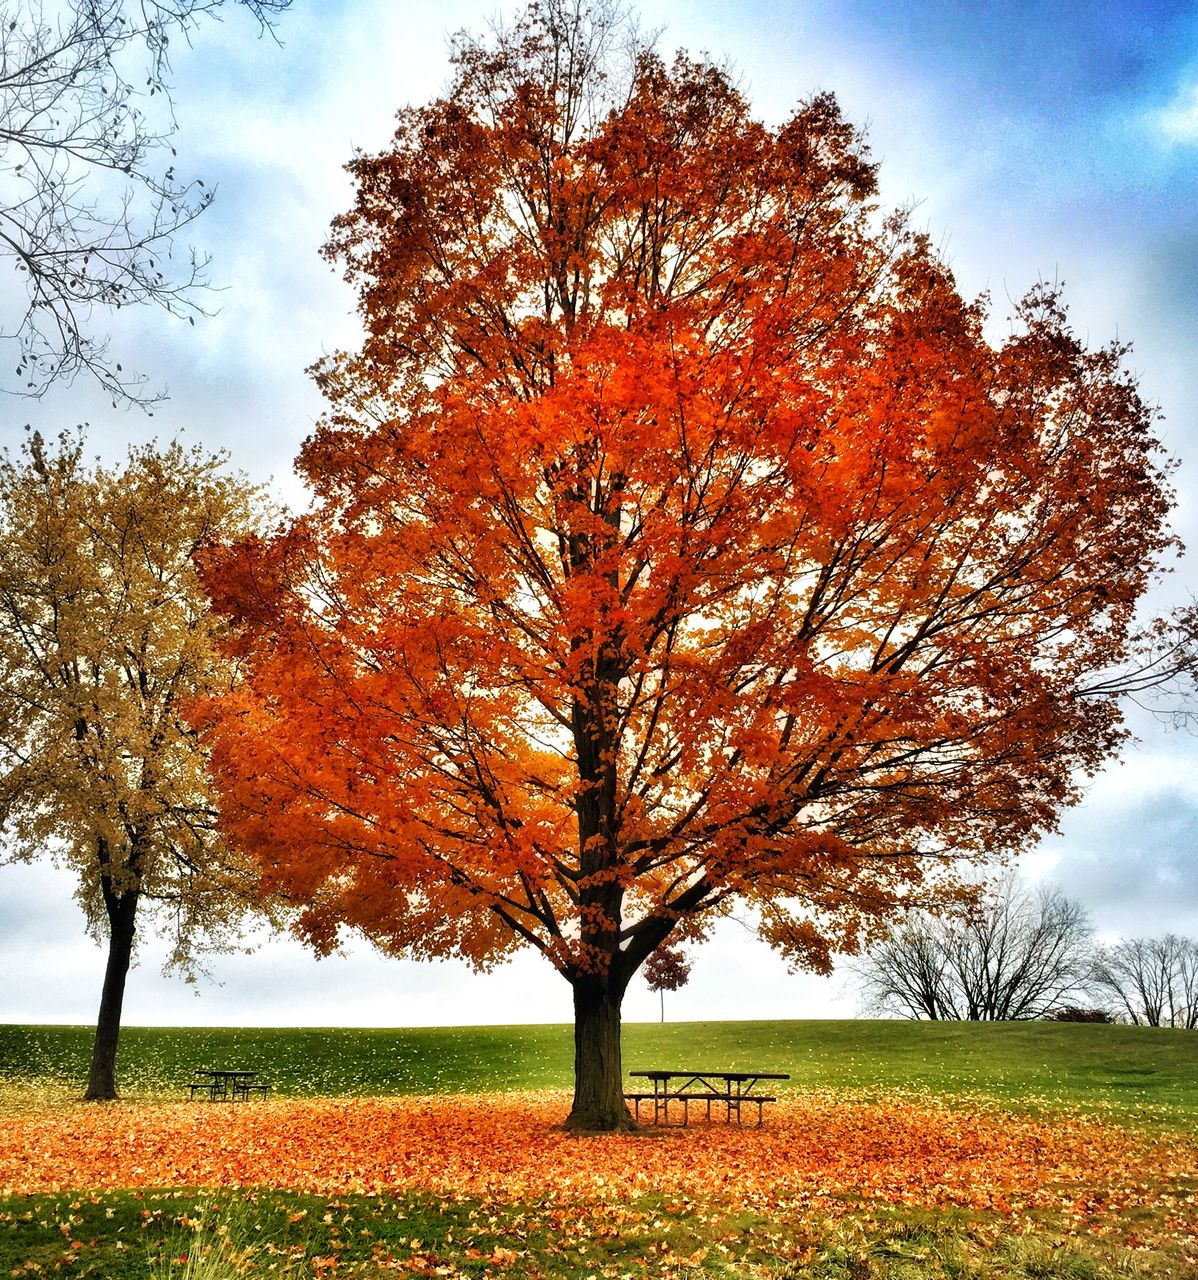 tree, autumn, nature, orange color, landscape, tranquility, beauty in nature, solitude, change, sky, tranquil scene, grass, field, scenics, leaf, outdoors, lone, growth, branch, day, no people, maple